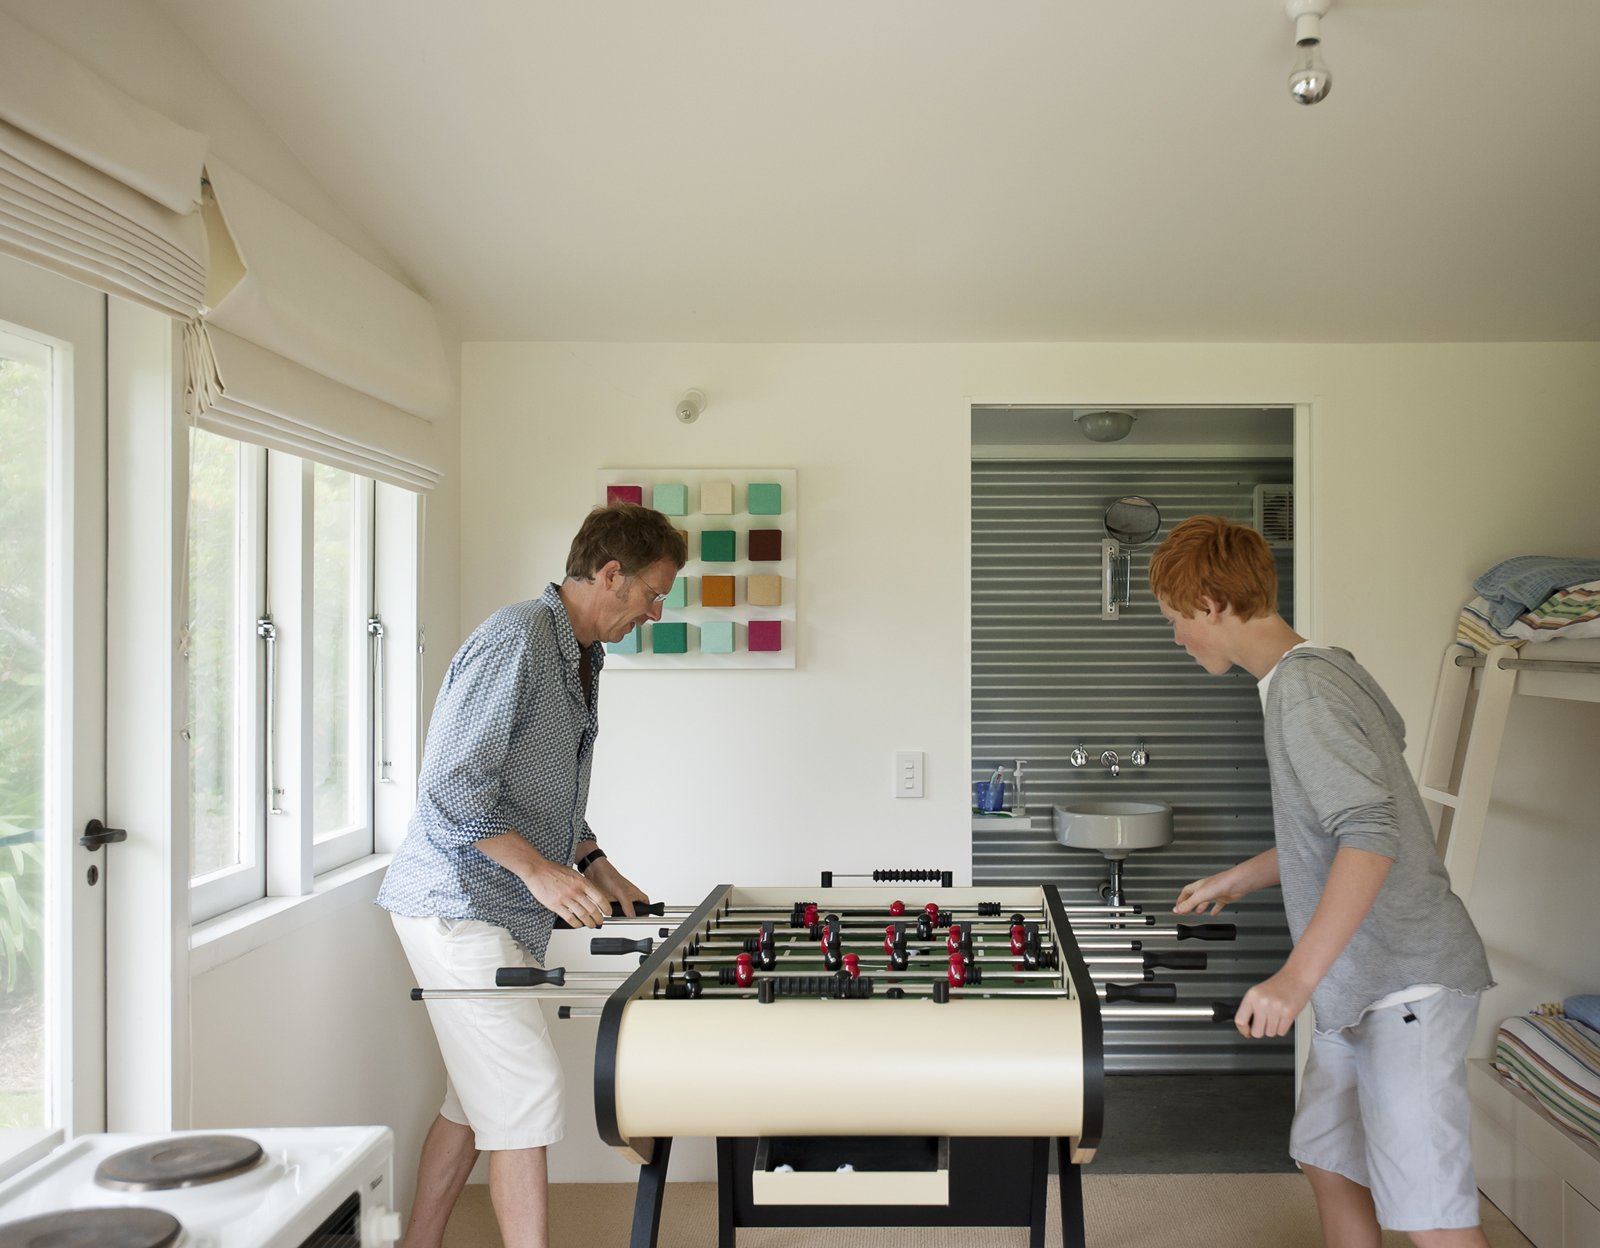 Will and Tom enjoy their other bedroom essential: a foosball table. Bach to the Beach - Photo 21 of 30